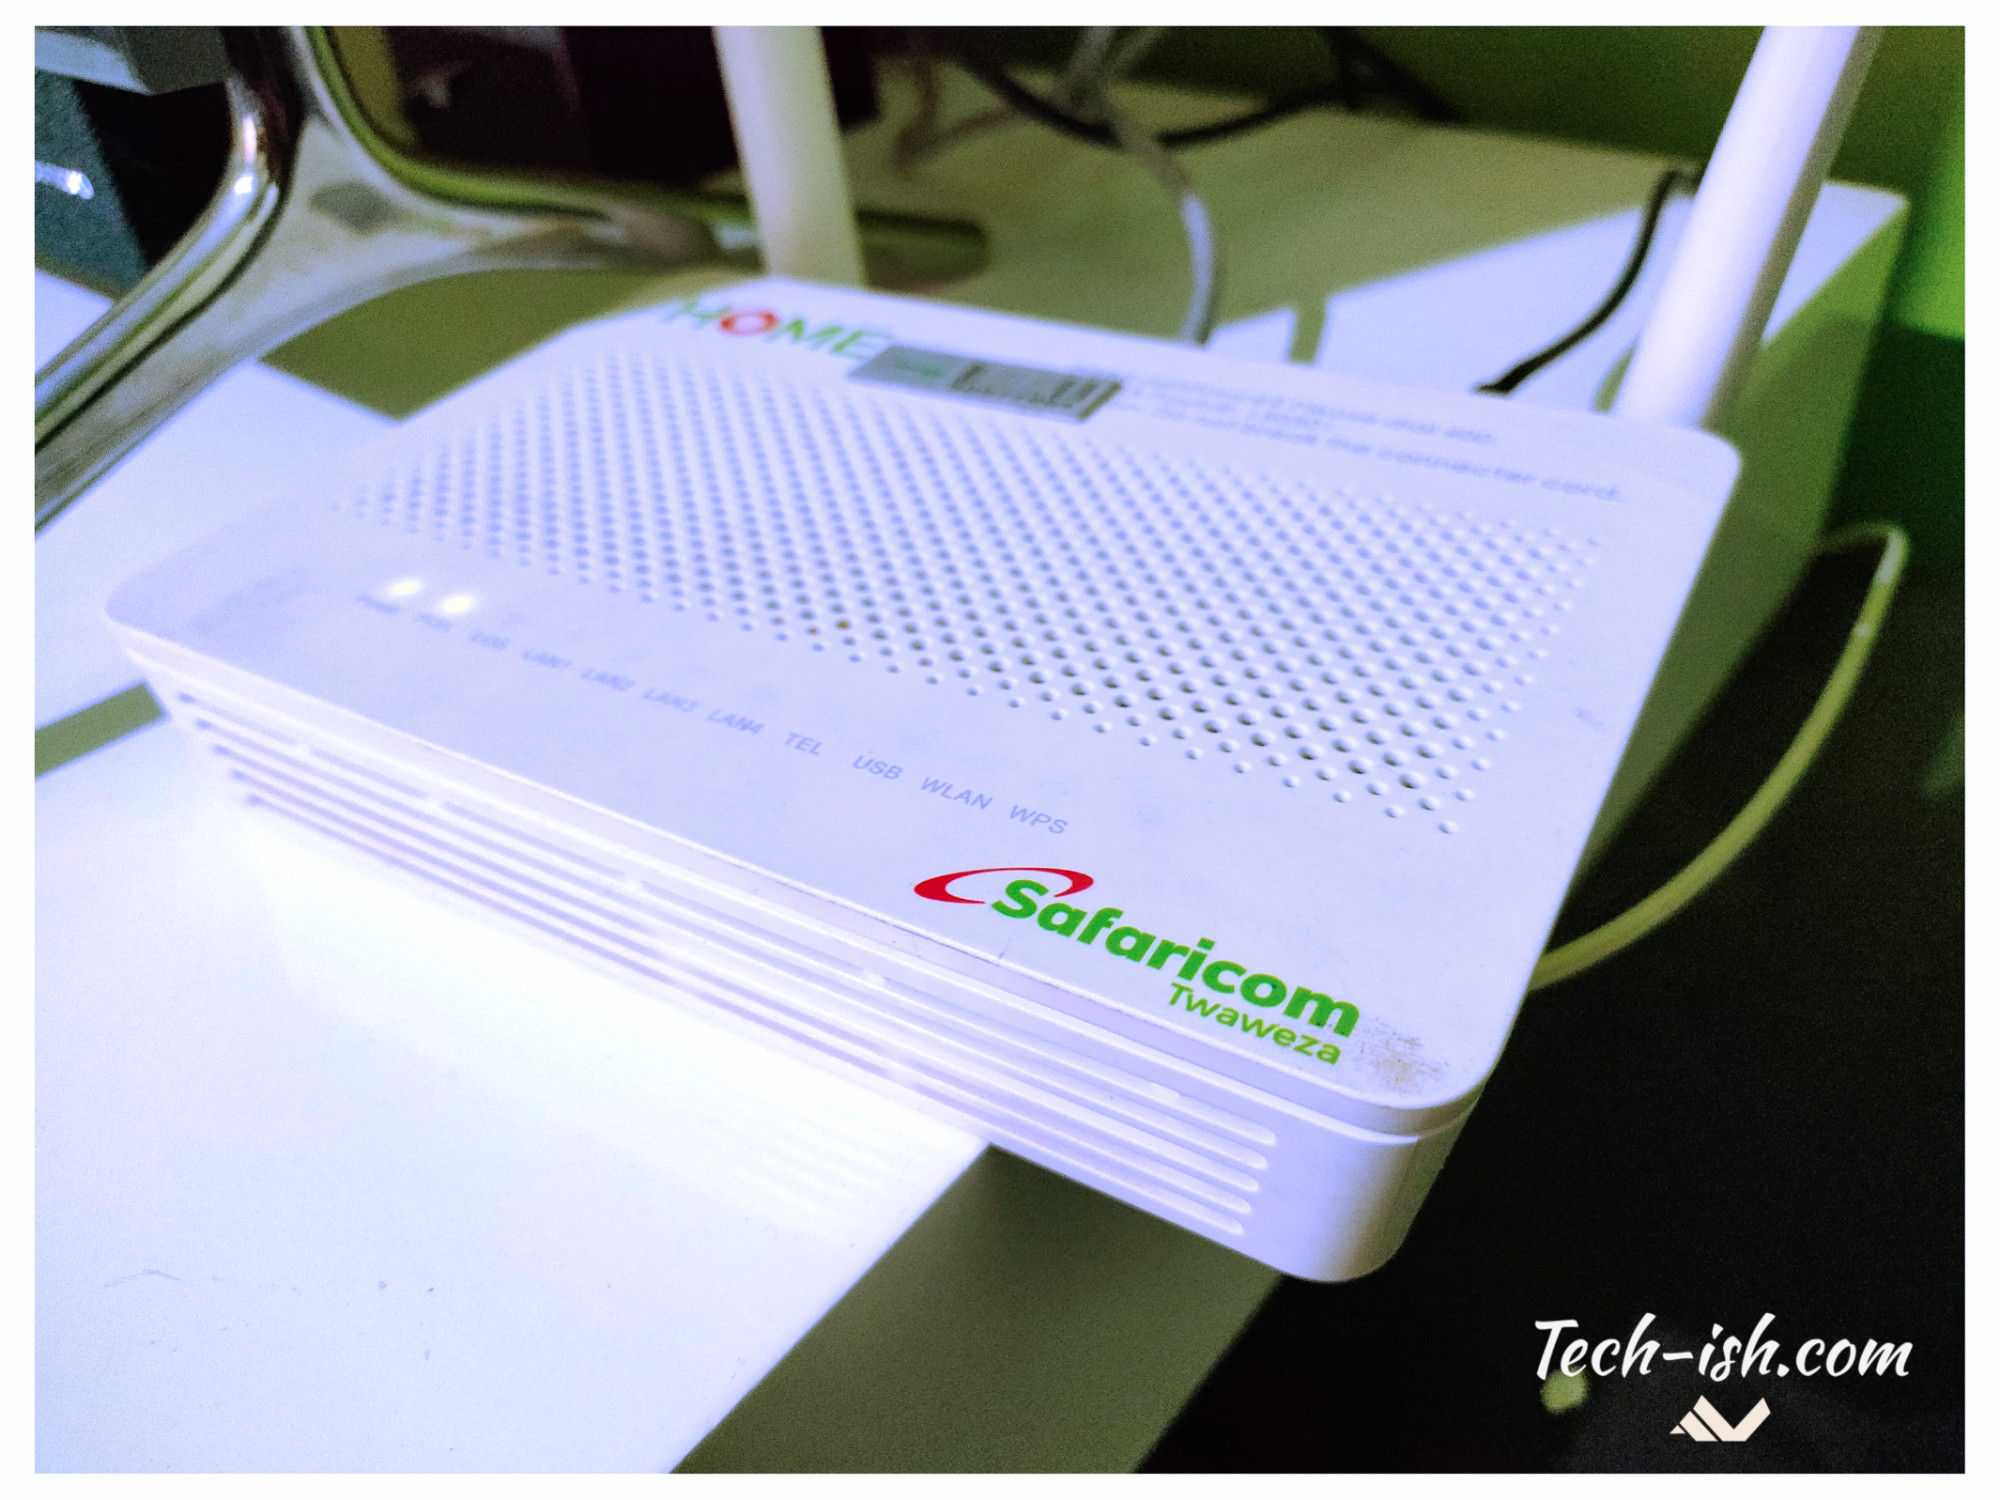 Safaricom's 20Mbps Home Fibre Package is enough for all my home internet needs